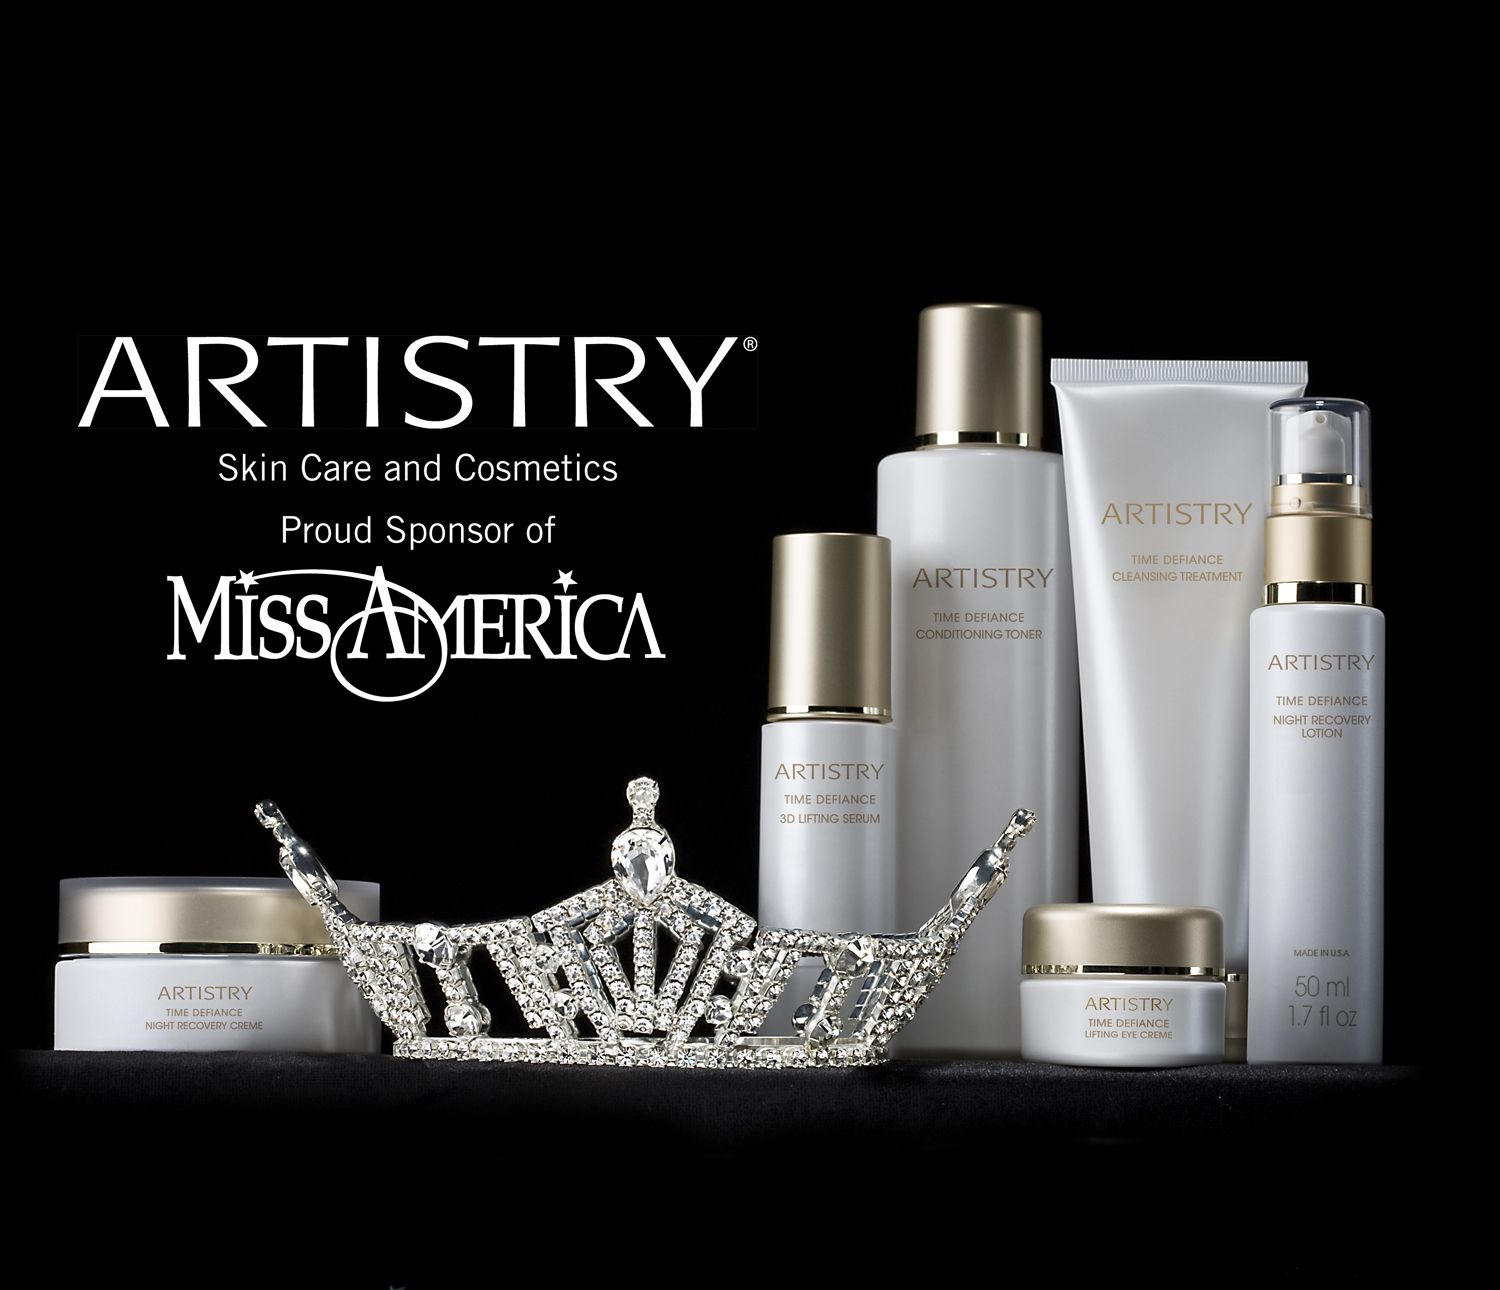 Jual Artisty Cream System Update 2018 Tcash Vaganza 26 Dancow 3 Madu 800gr Artistry Amway Download Stunning Free Images About Photography Global And Artistryr Partner With